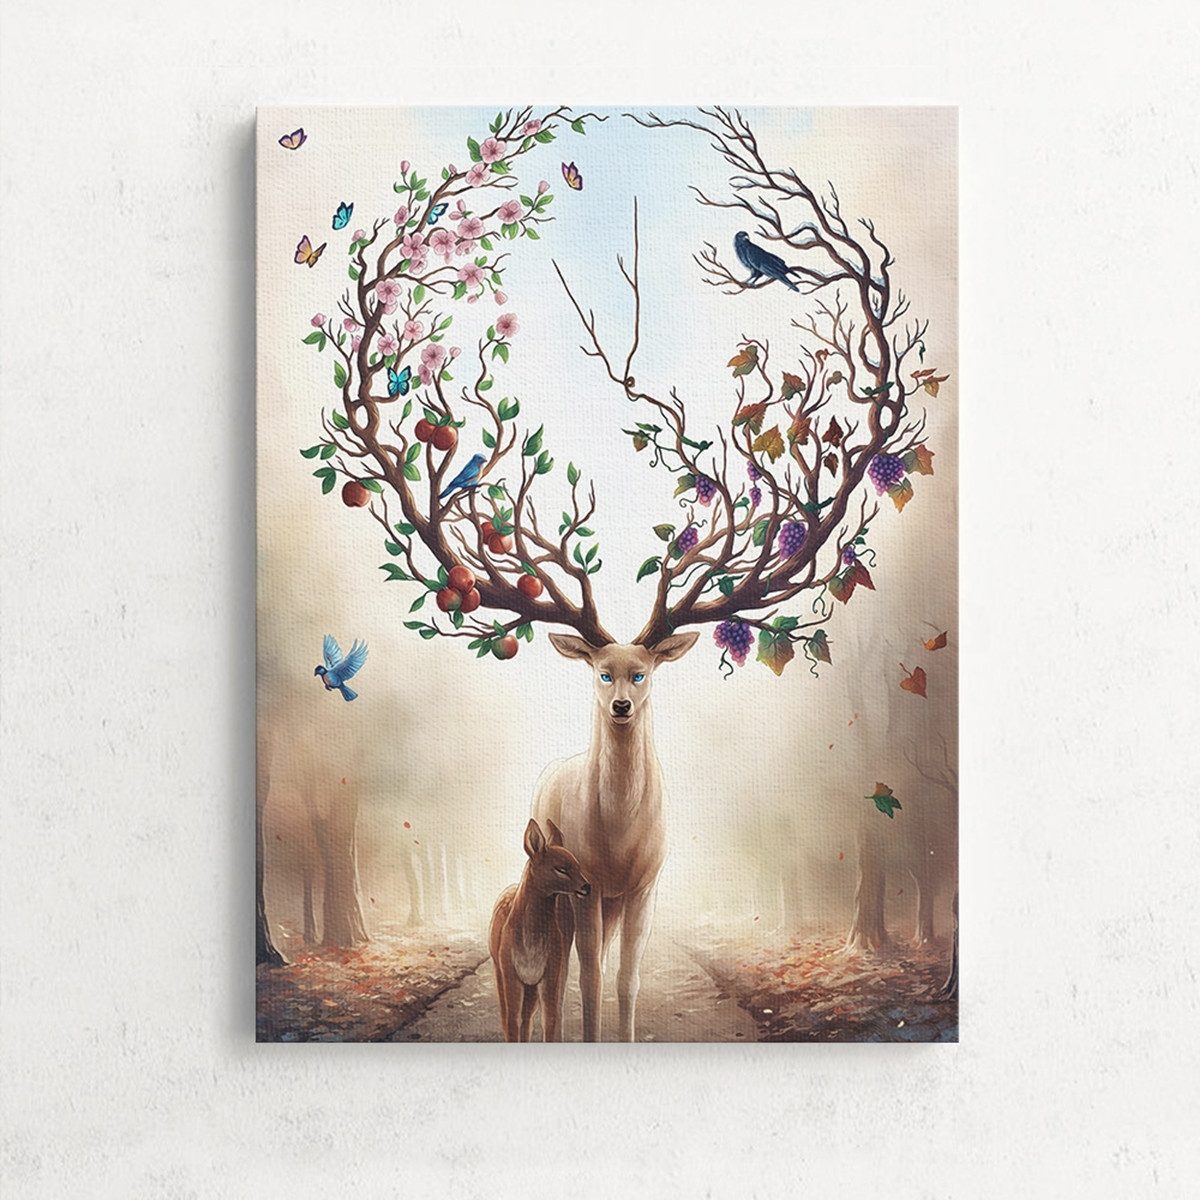 Home Decor Wall Art Intended For Current Unframed Canvas Print Deer Design Modern Home Decor Wall Art (Gallery 11 of 15)